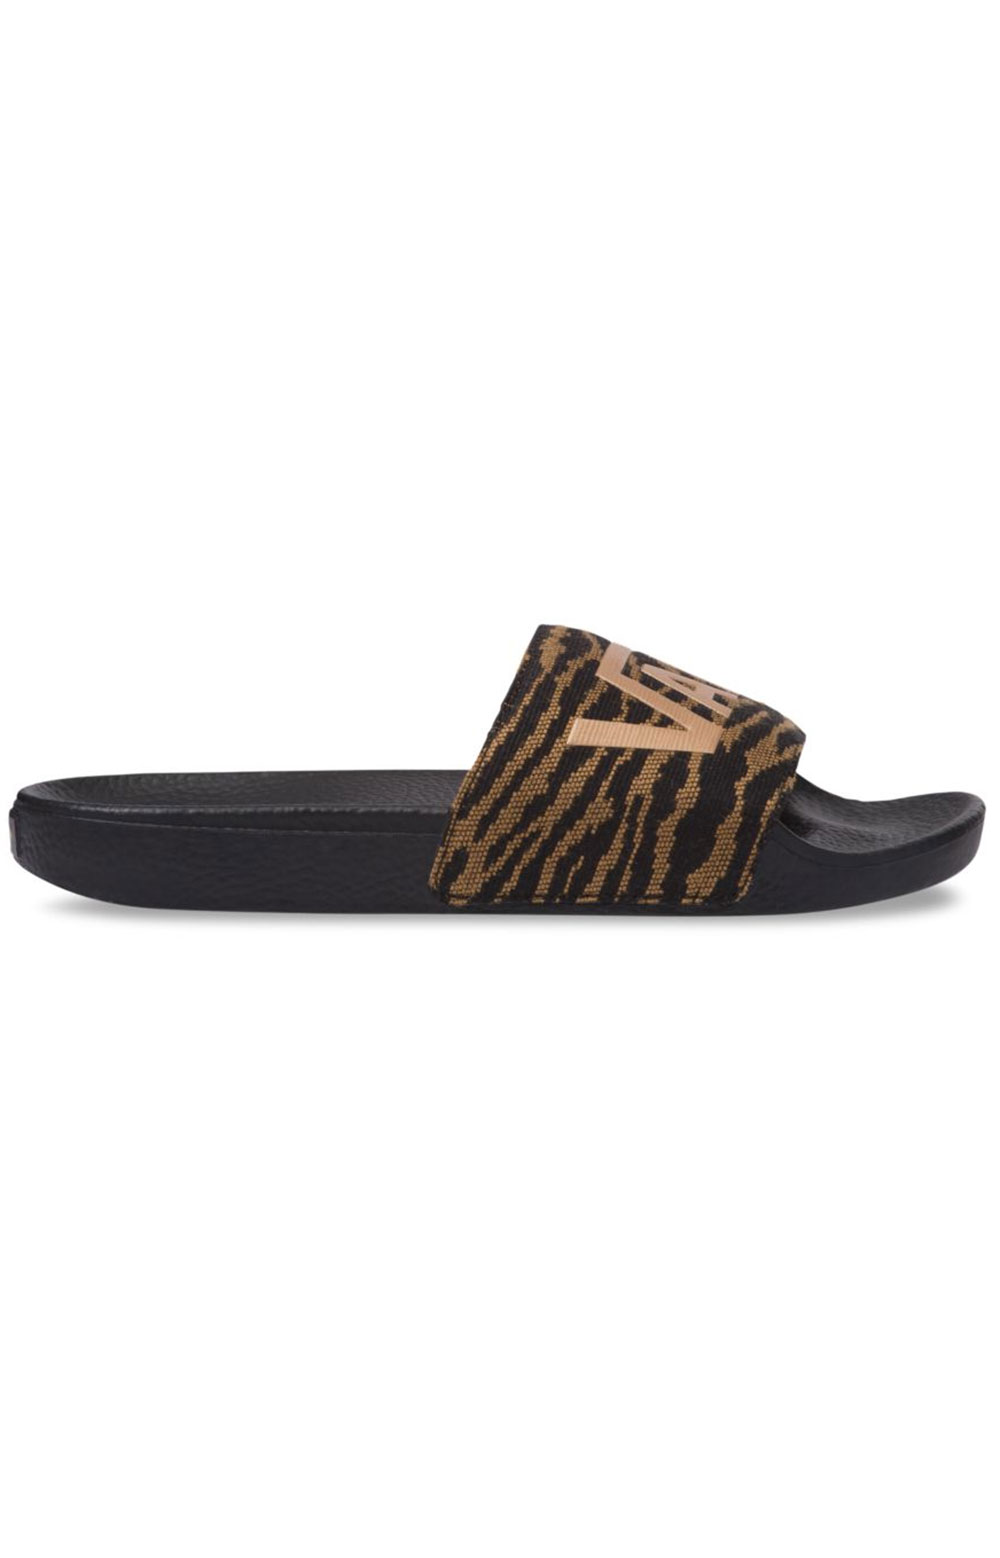 Woven Tiger Slide-On Sandals - Black